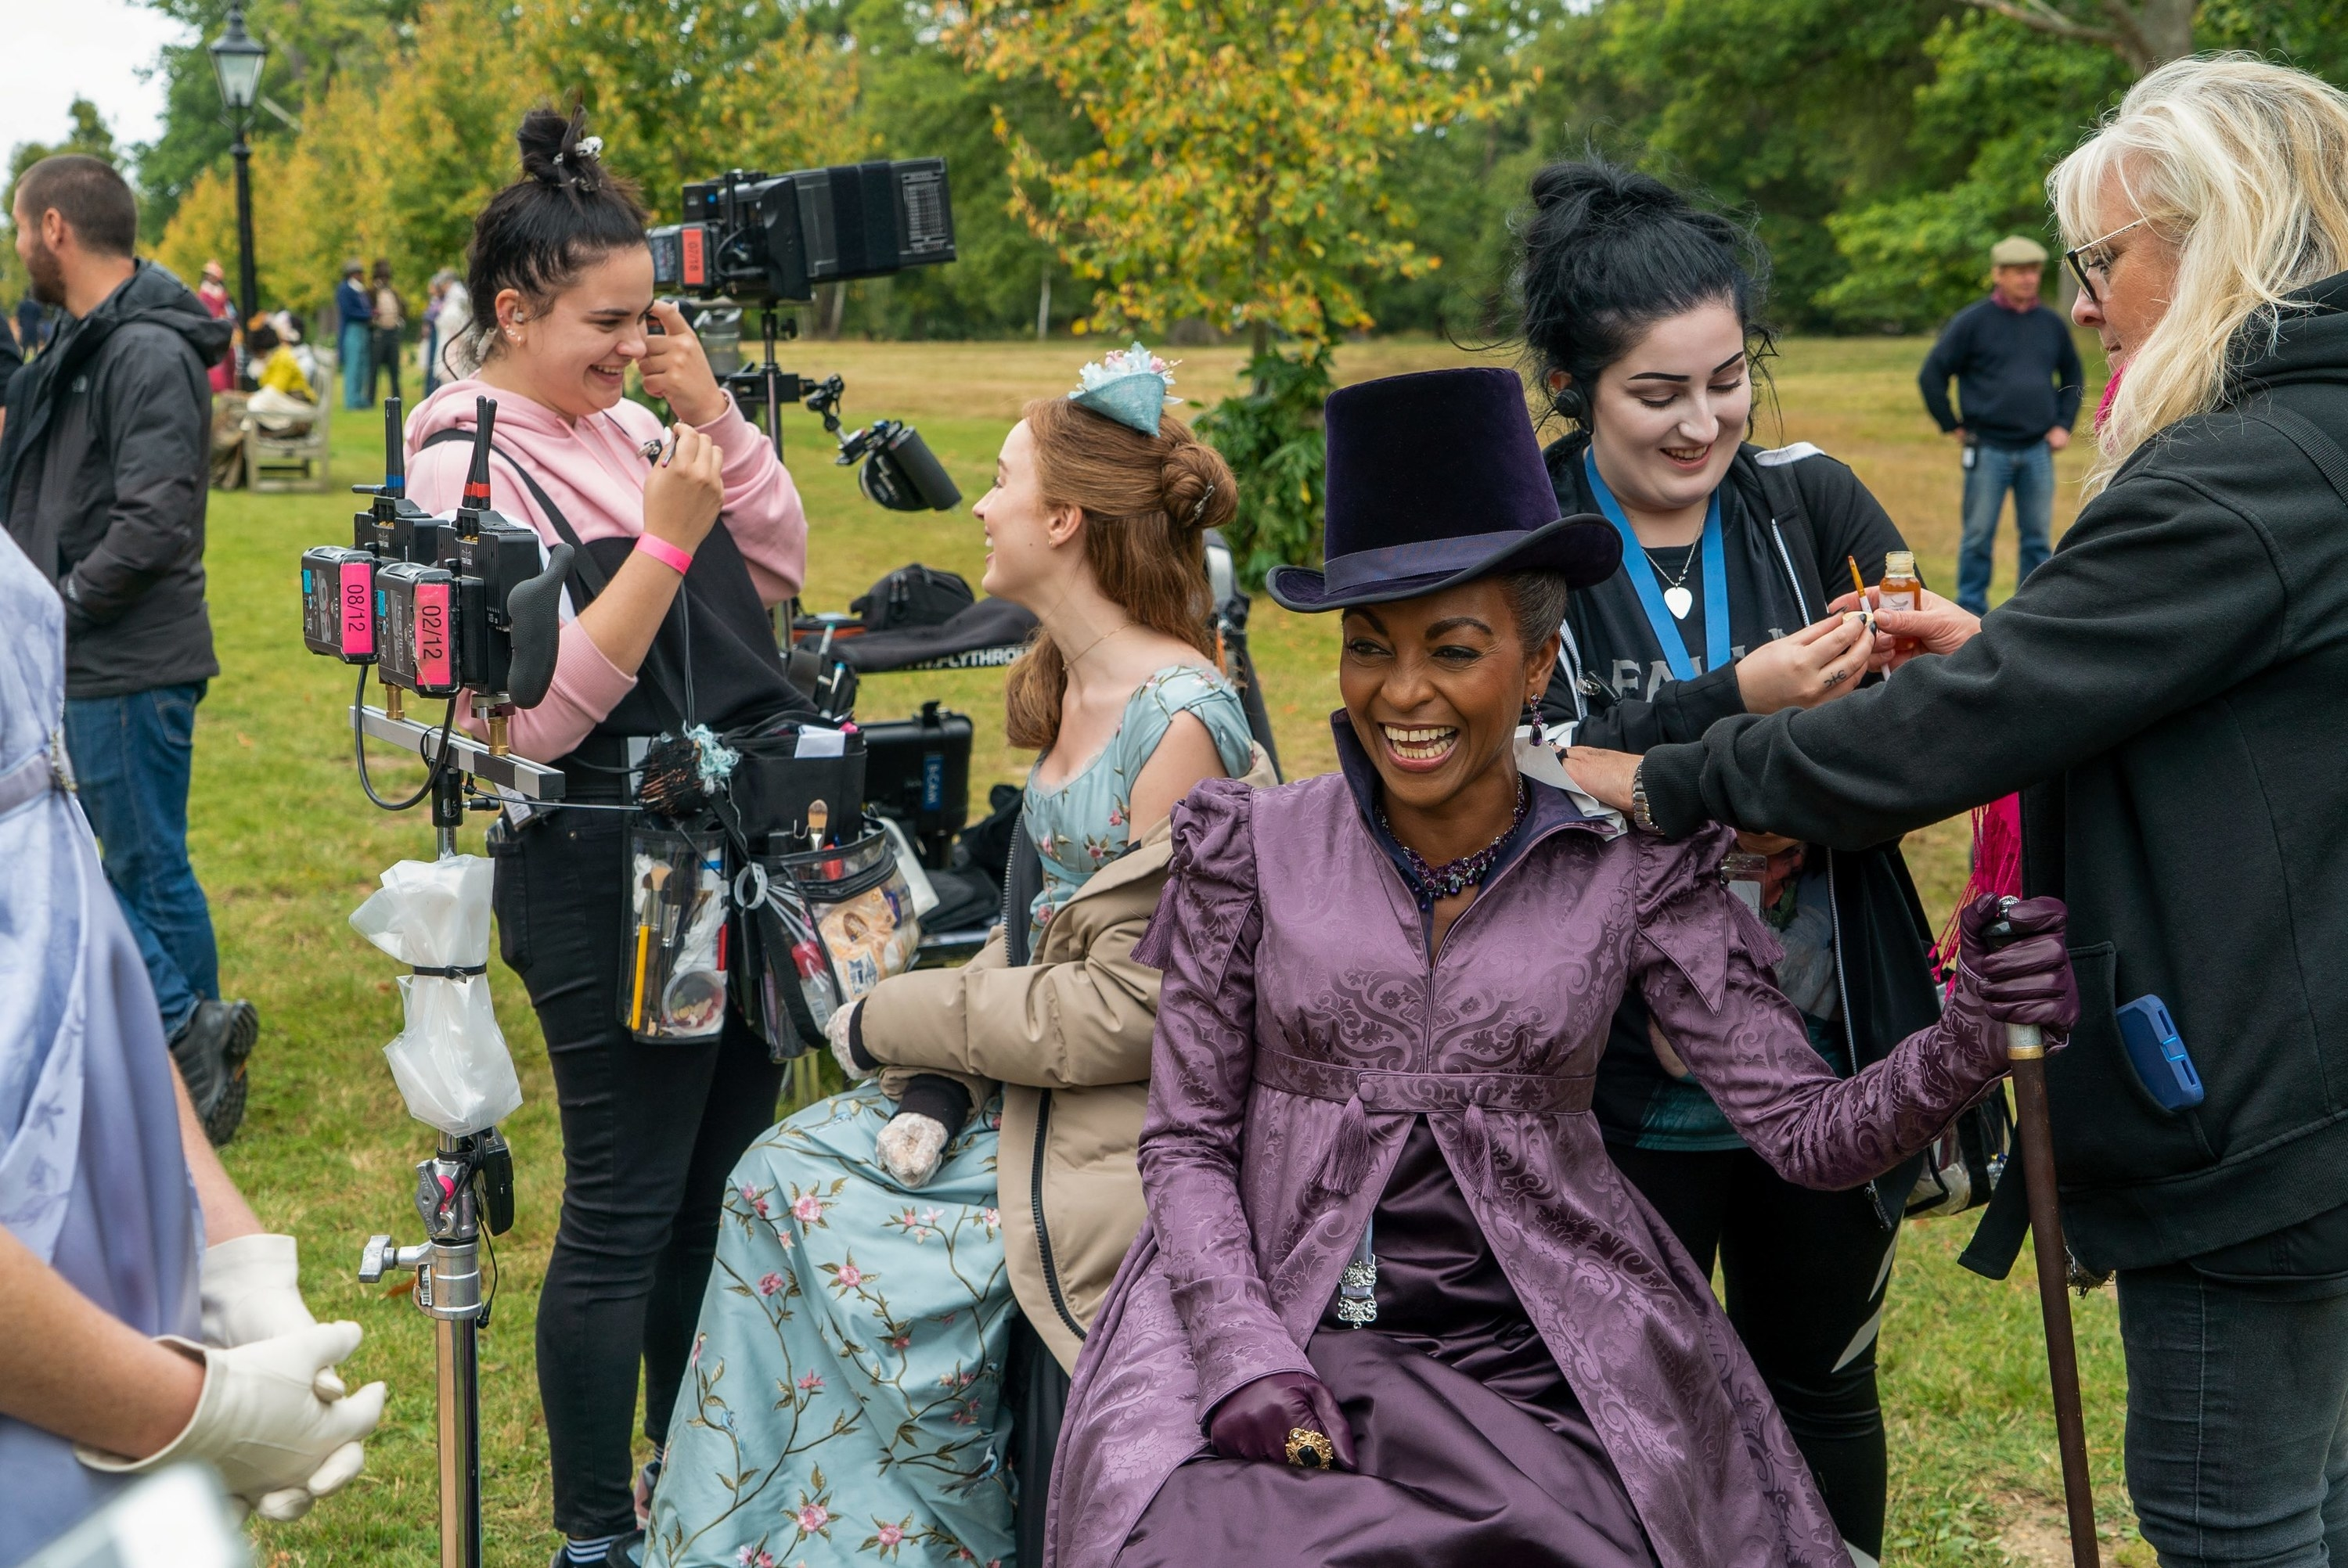 Adjoa Andoh laughing behind the scenes with Phoebe Dynevor